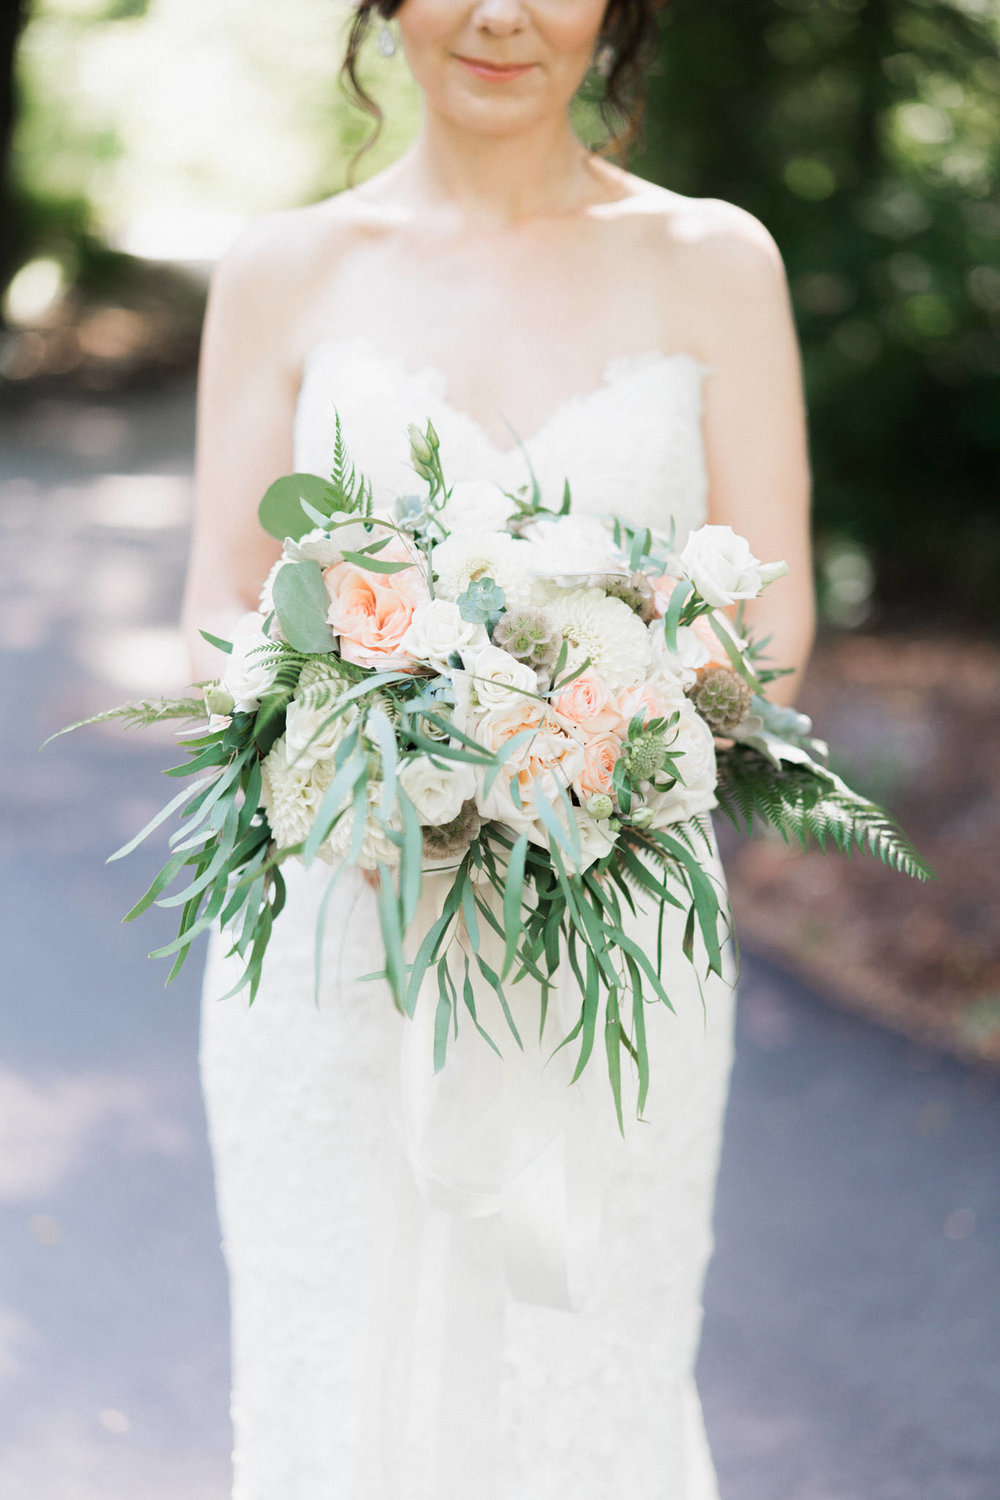 Thomas Hobbs wedding bouquet